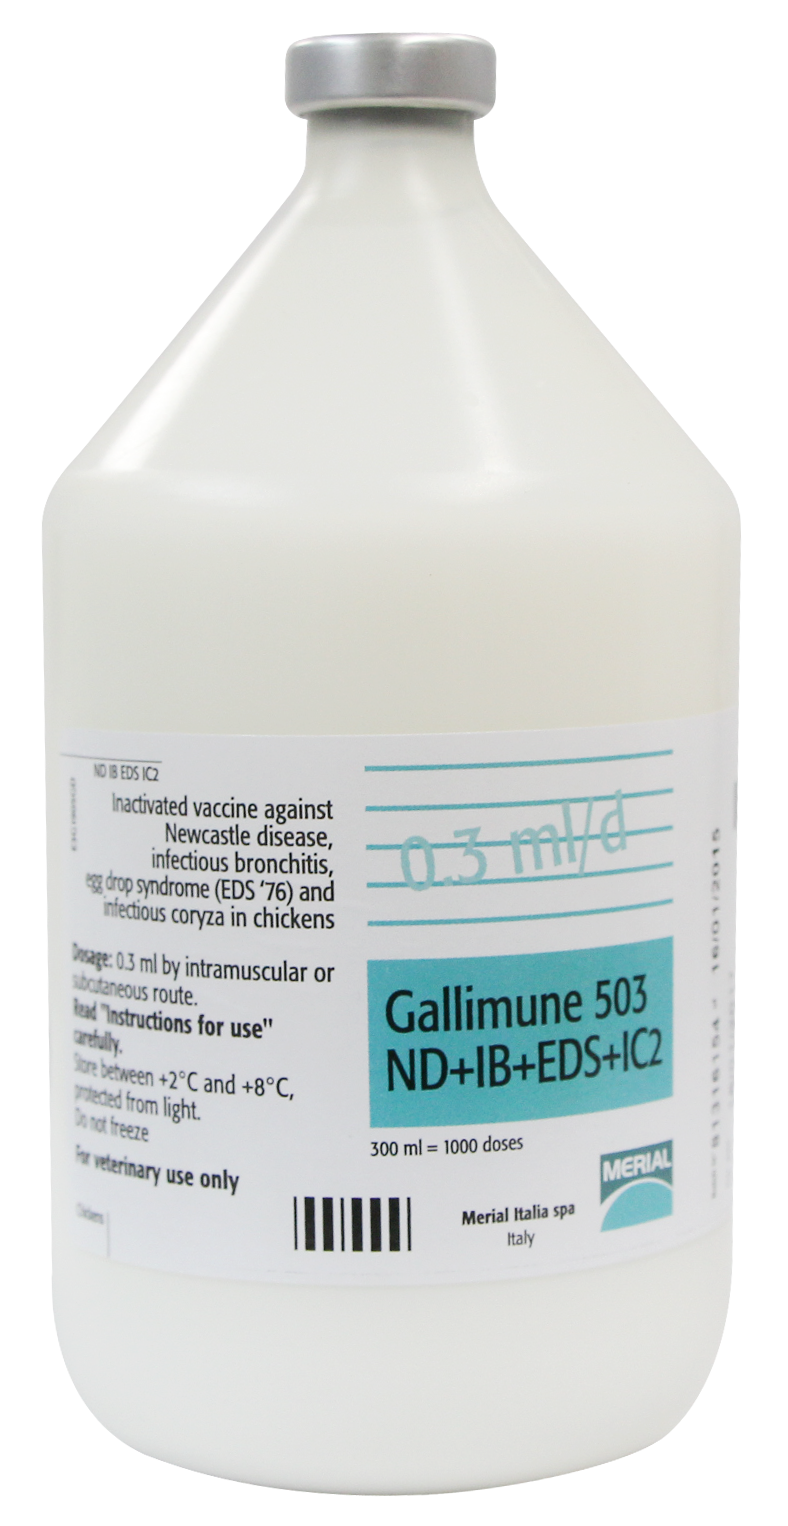 GALLIMUNE 503 ND+IB+EDS+IC2